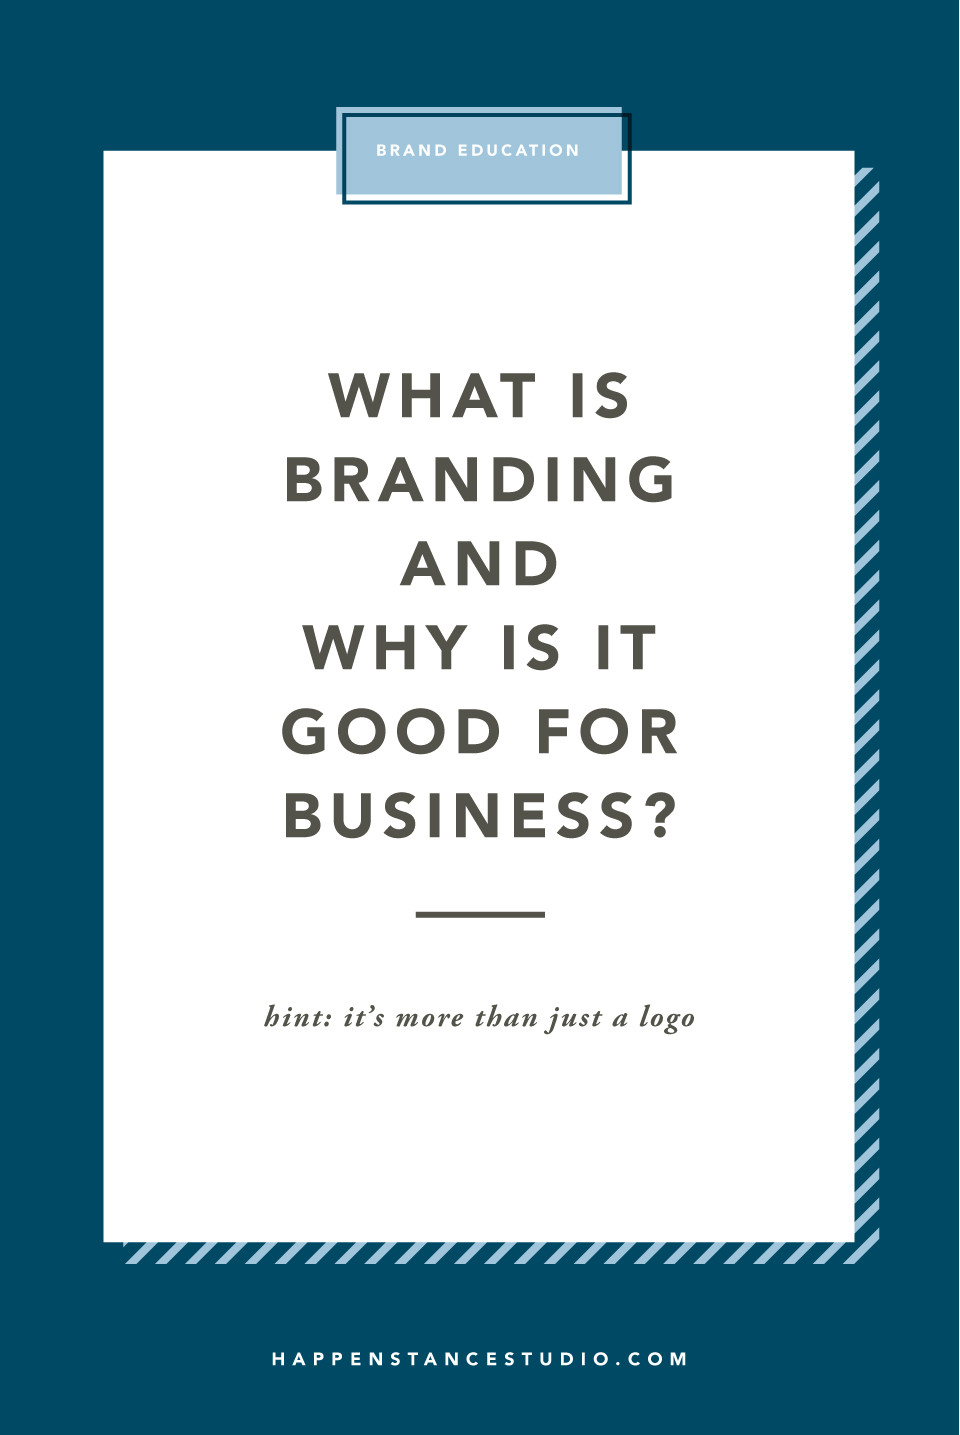 What Is Branding and Why Is It Good for Business? Hint: It's more than just a logo.